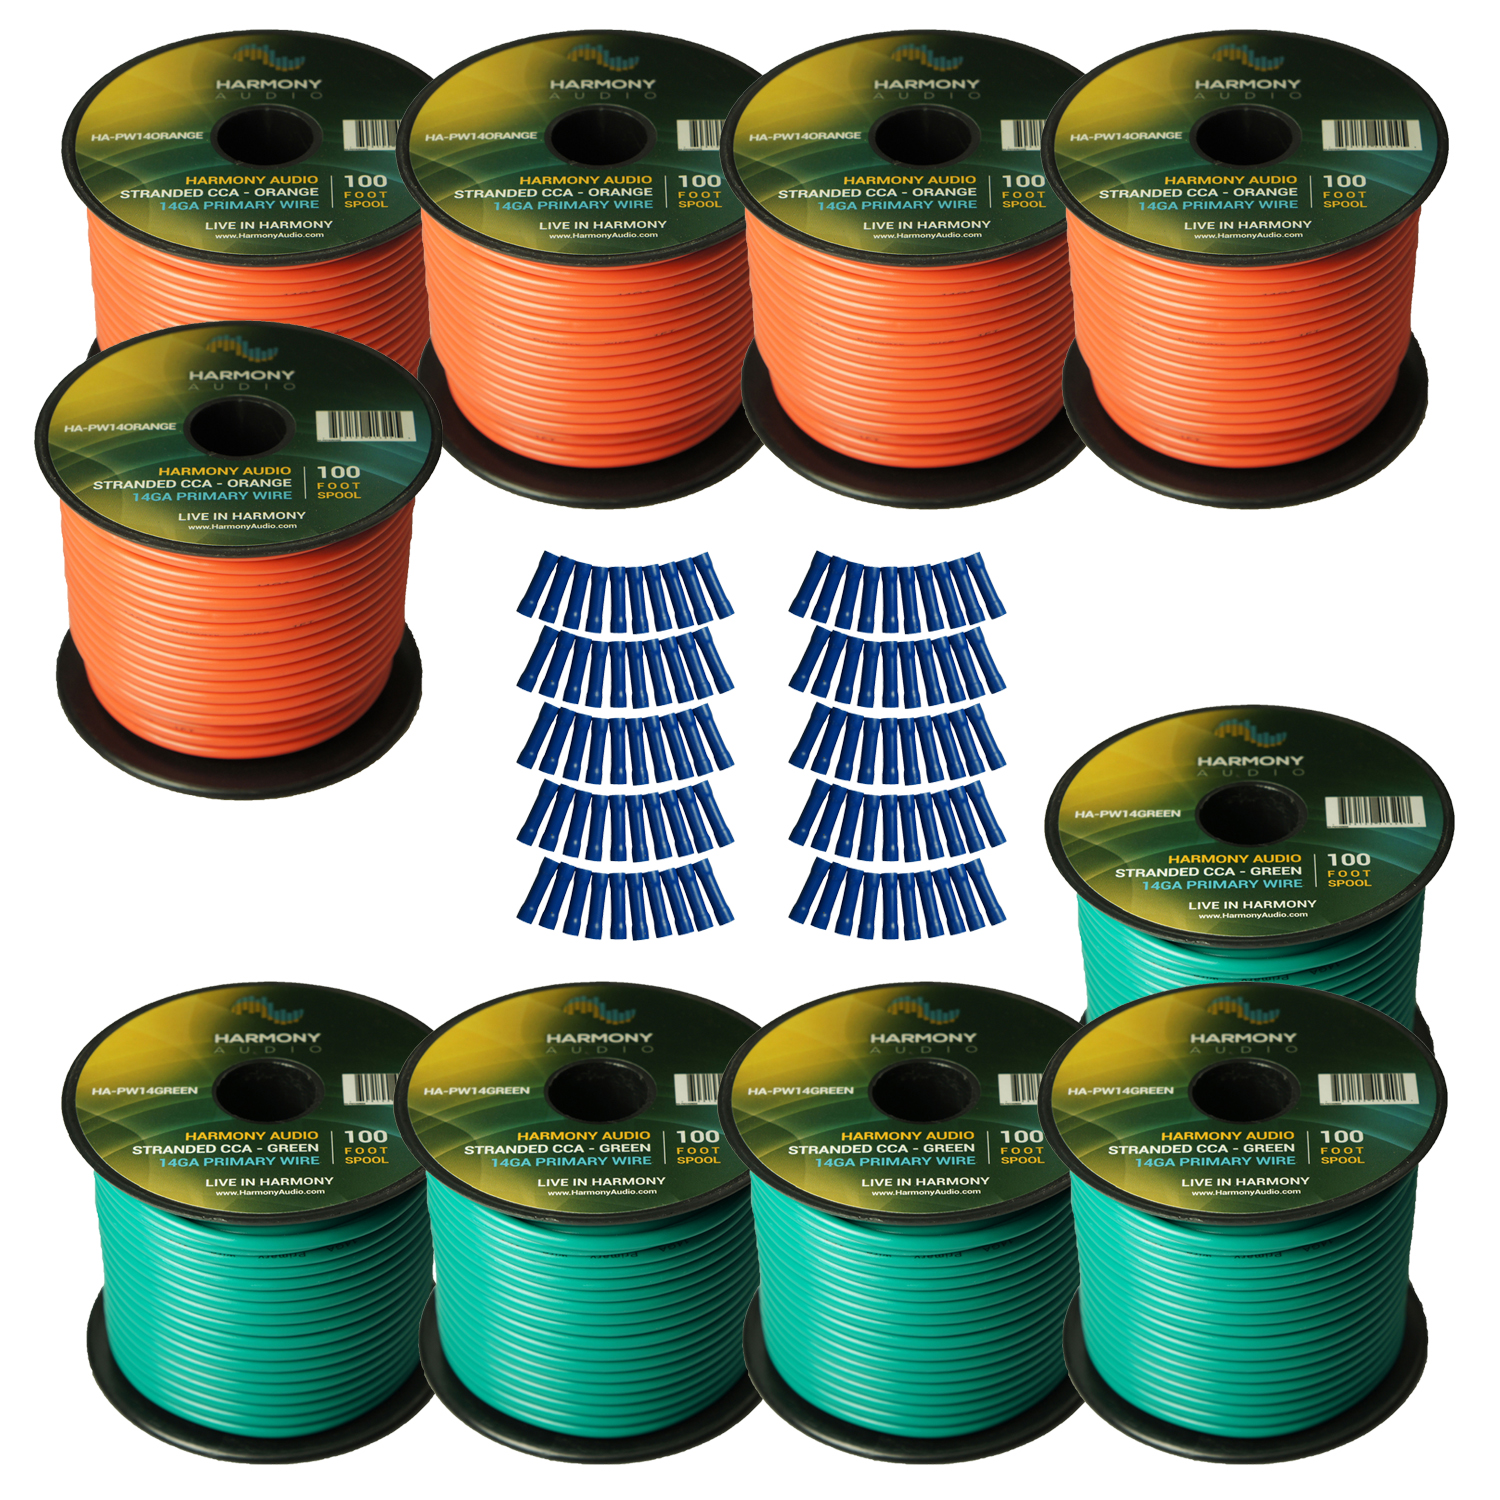 Harmony Audio Primary Single Conductor 14 Gauge Power or Ground Wire - 10 Rolls - 1000 Feet - Green & Orange for Car Audio / Trailer / Model Train / Remote